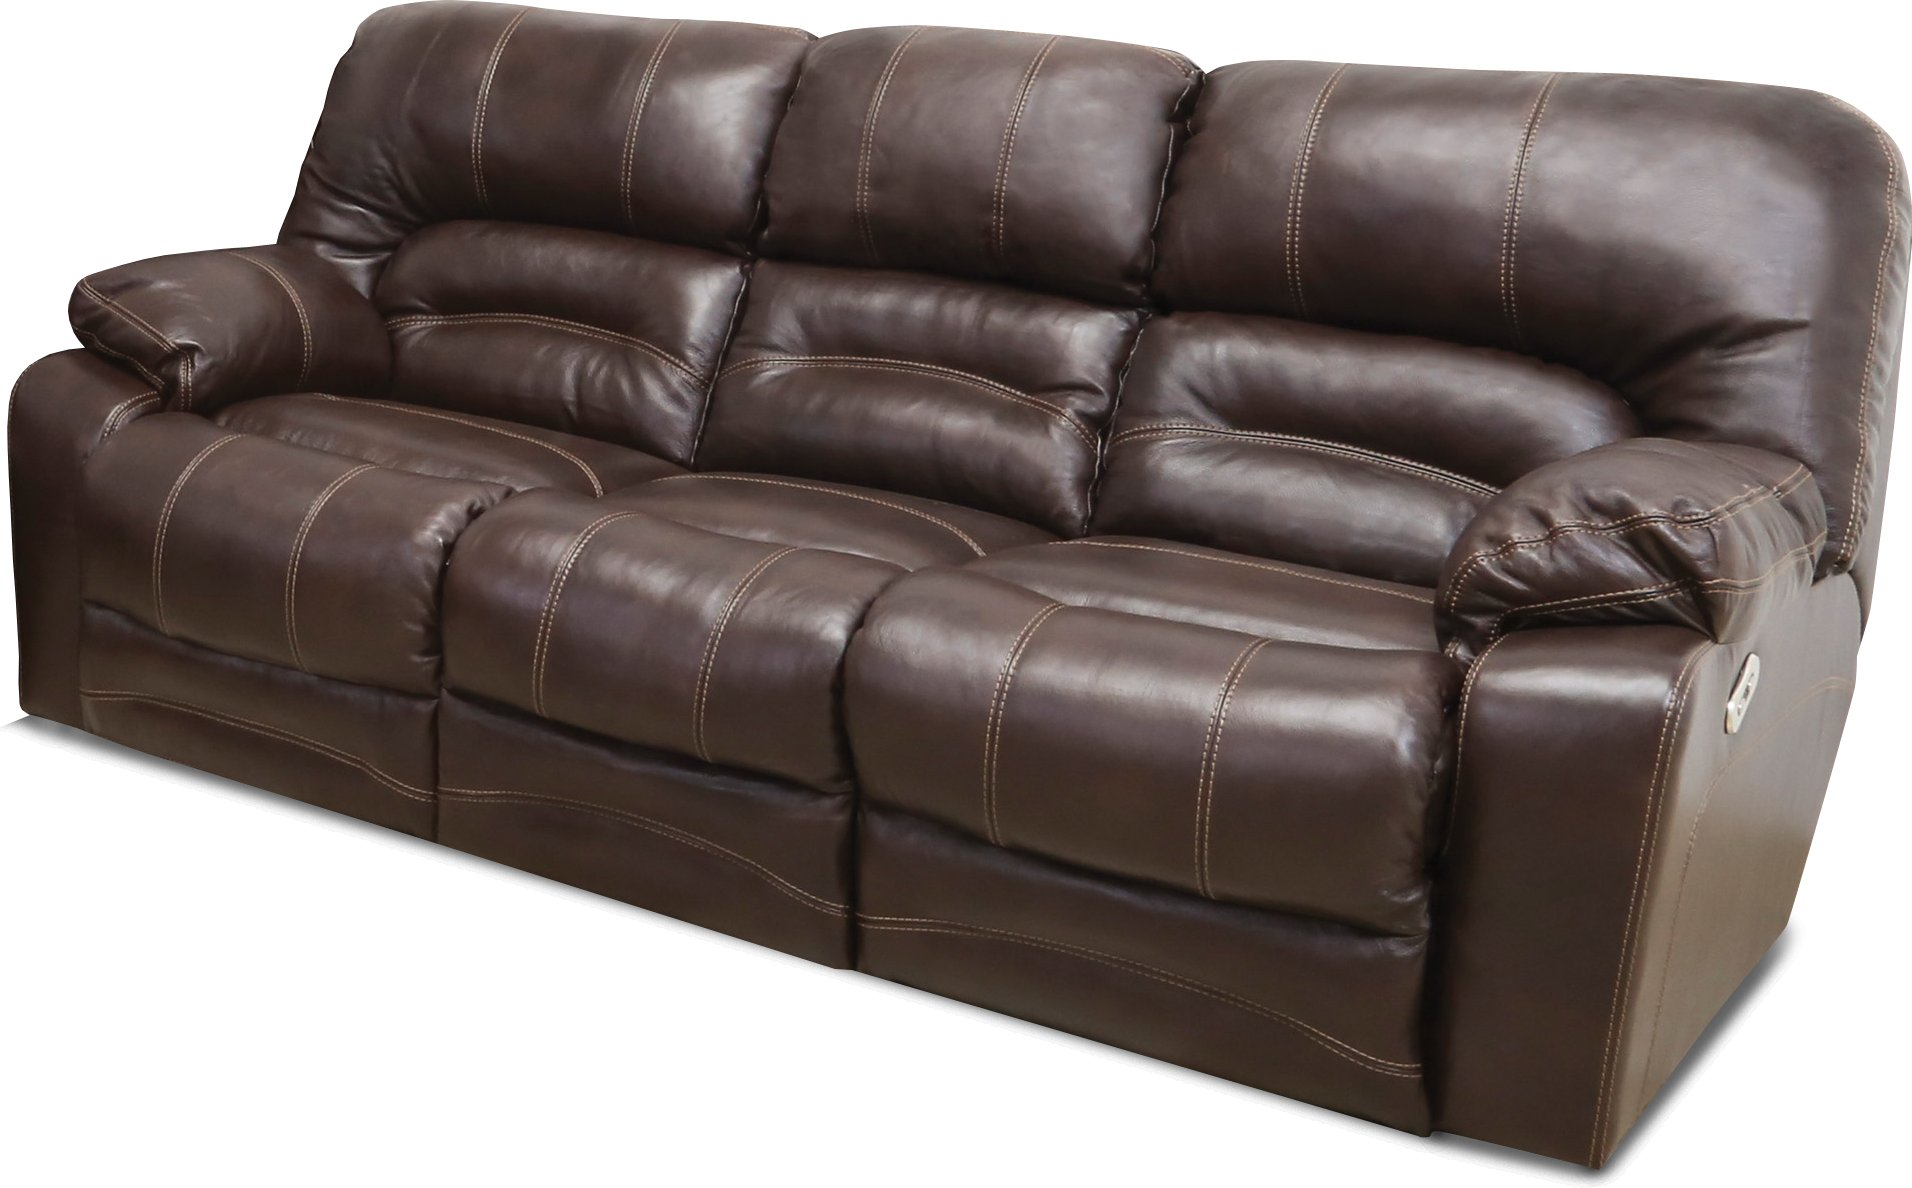 wid loveseat usm finn hei qlt op resmode su microfiber fmt tan sharpen furniture micro iccembed reclining brown city